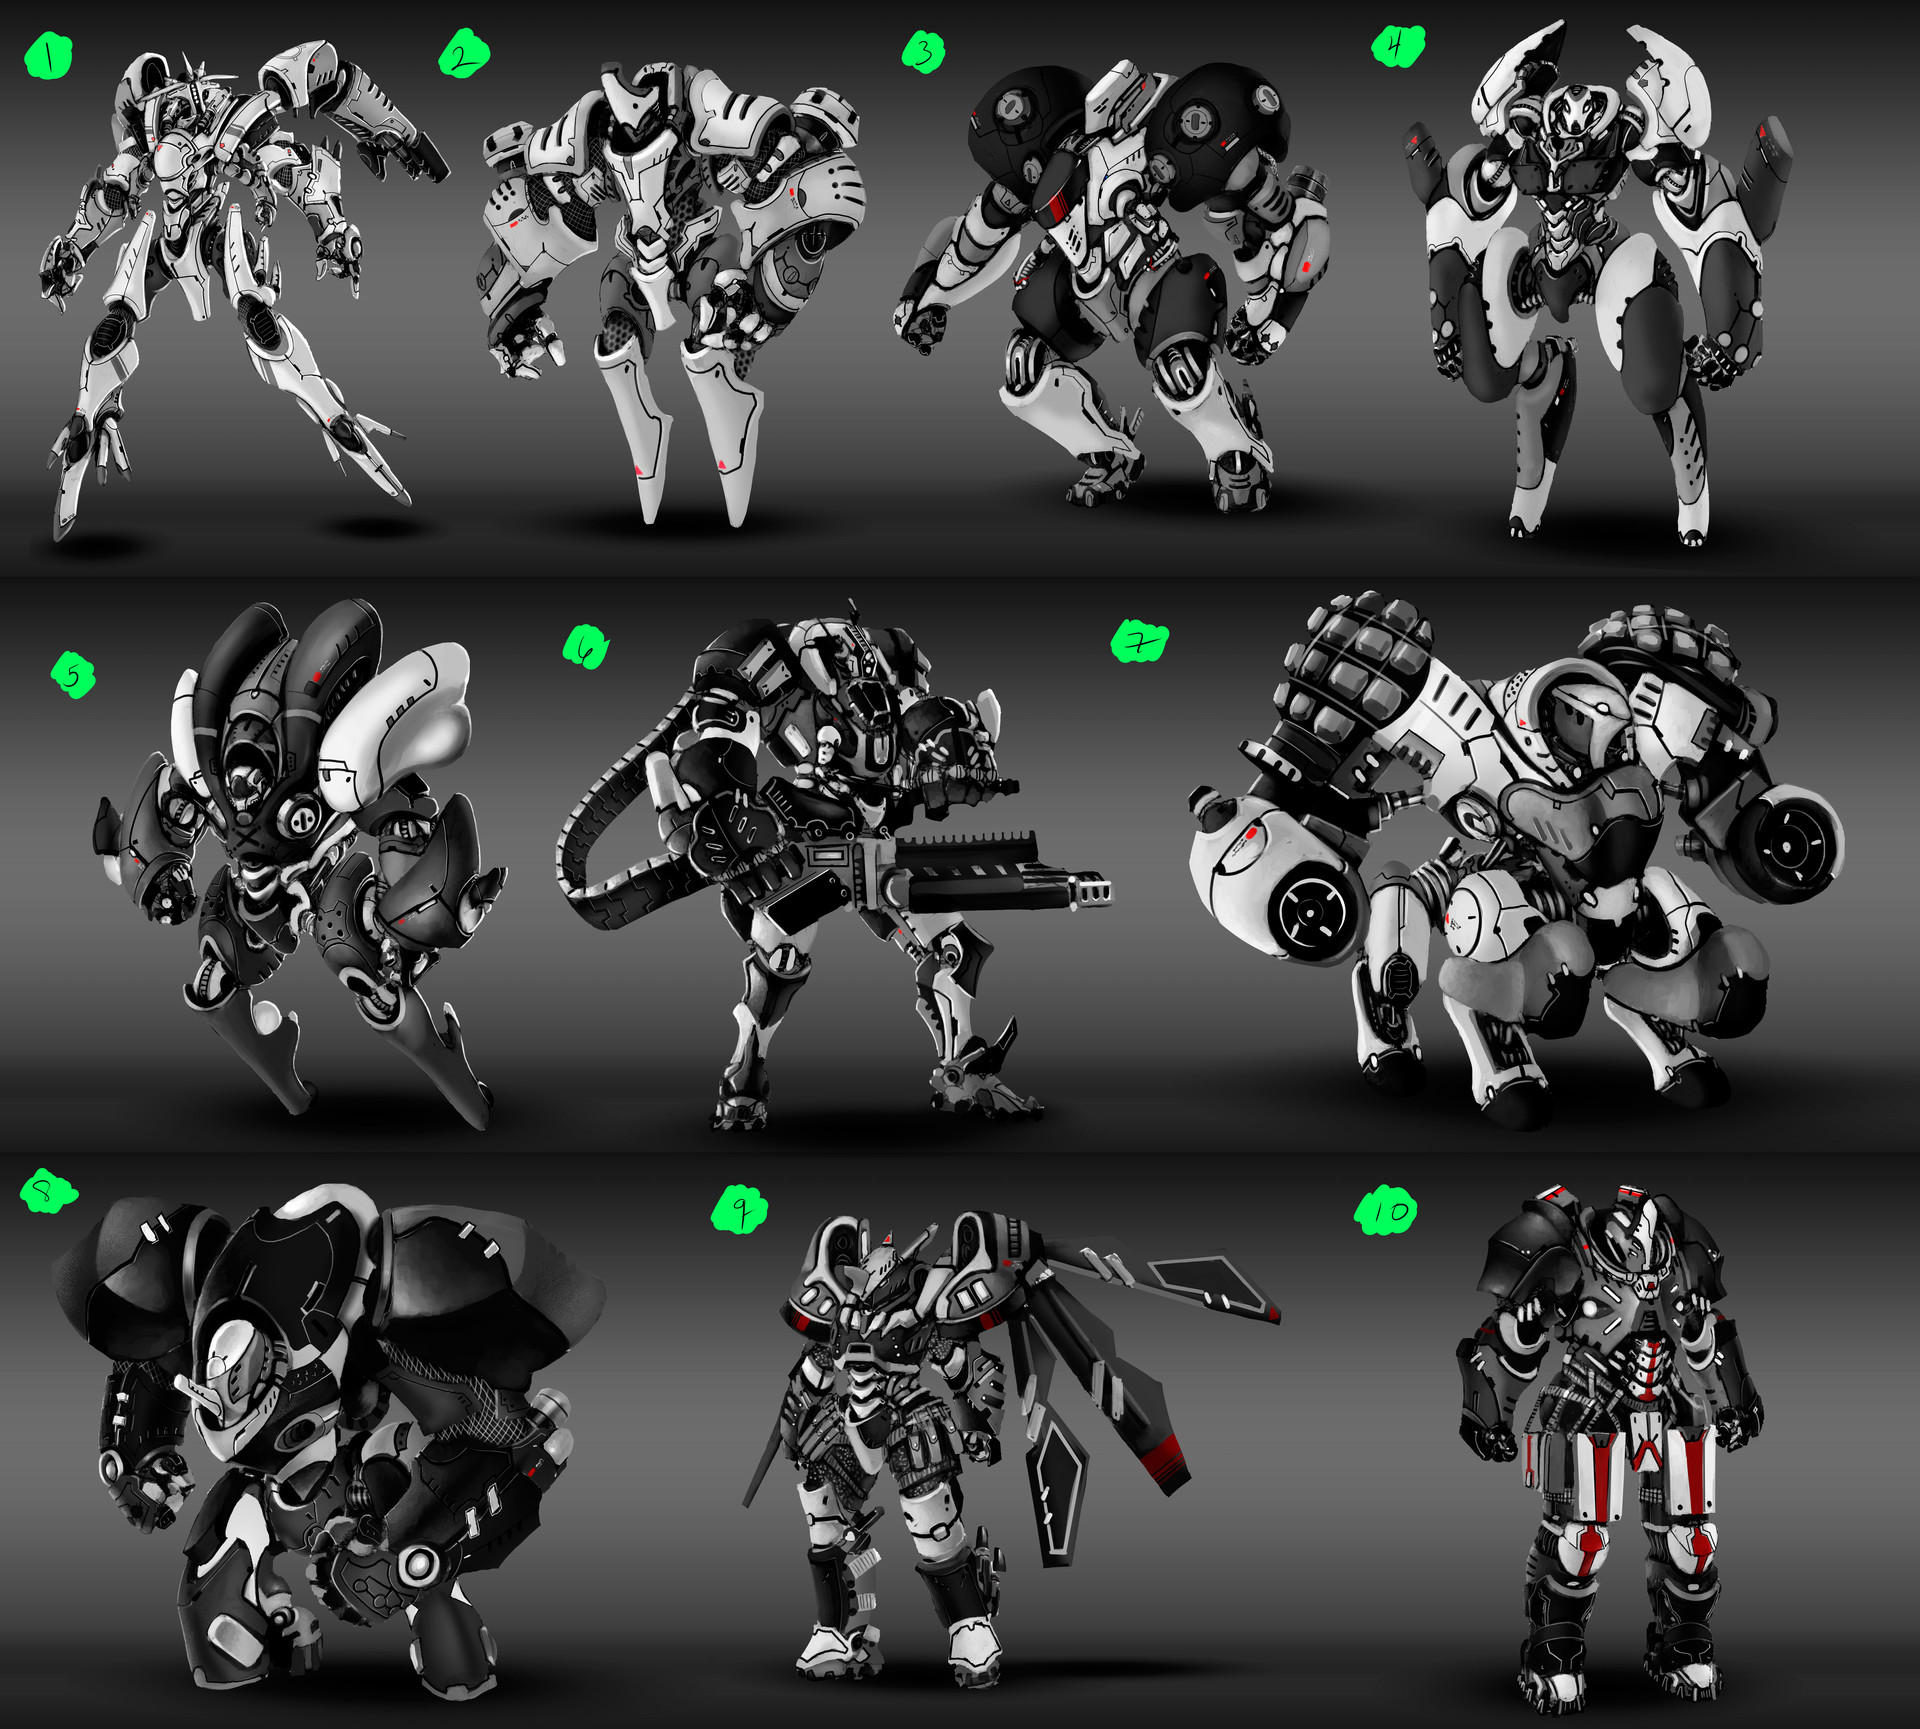 Final Concepts before render